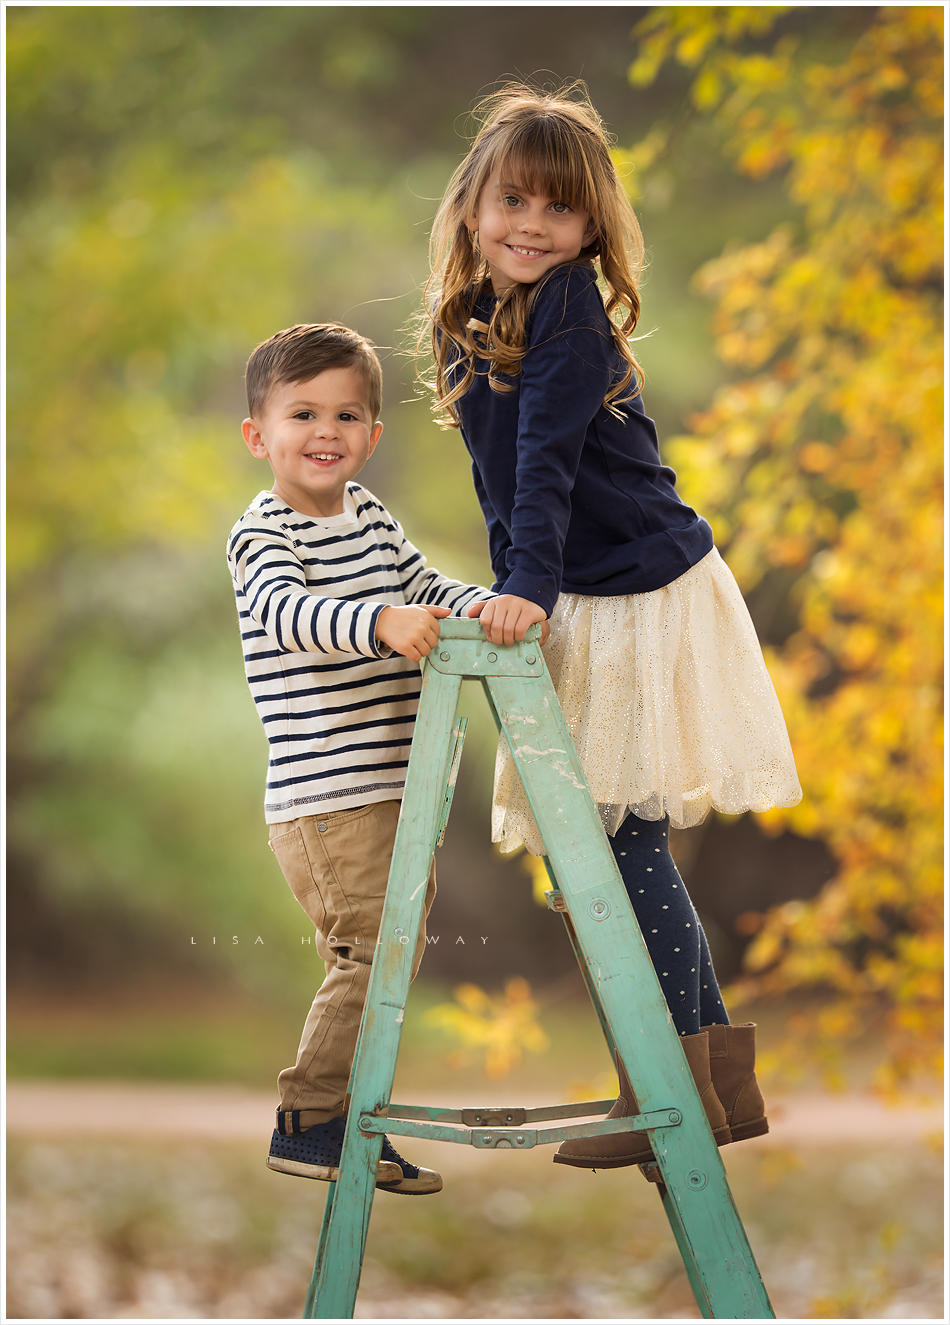 Adorable brother and sister pose on a blue wooden ladder for an outdoor portrait. LJHolloway Photography is a Las Vegas Family Photographer.